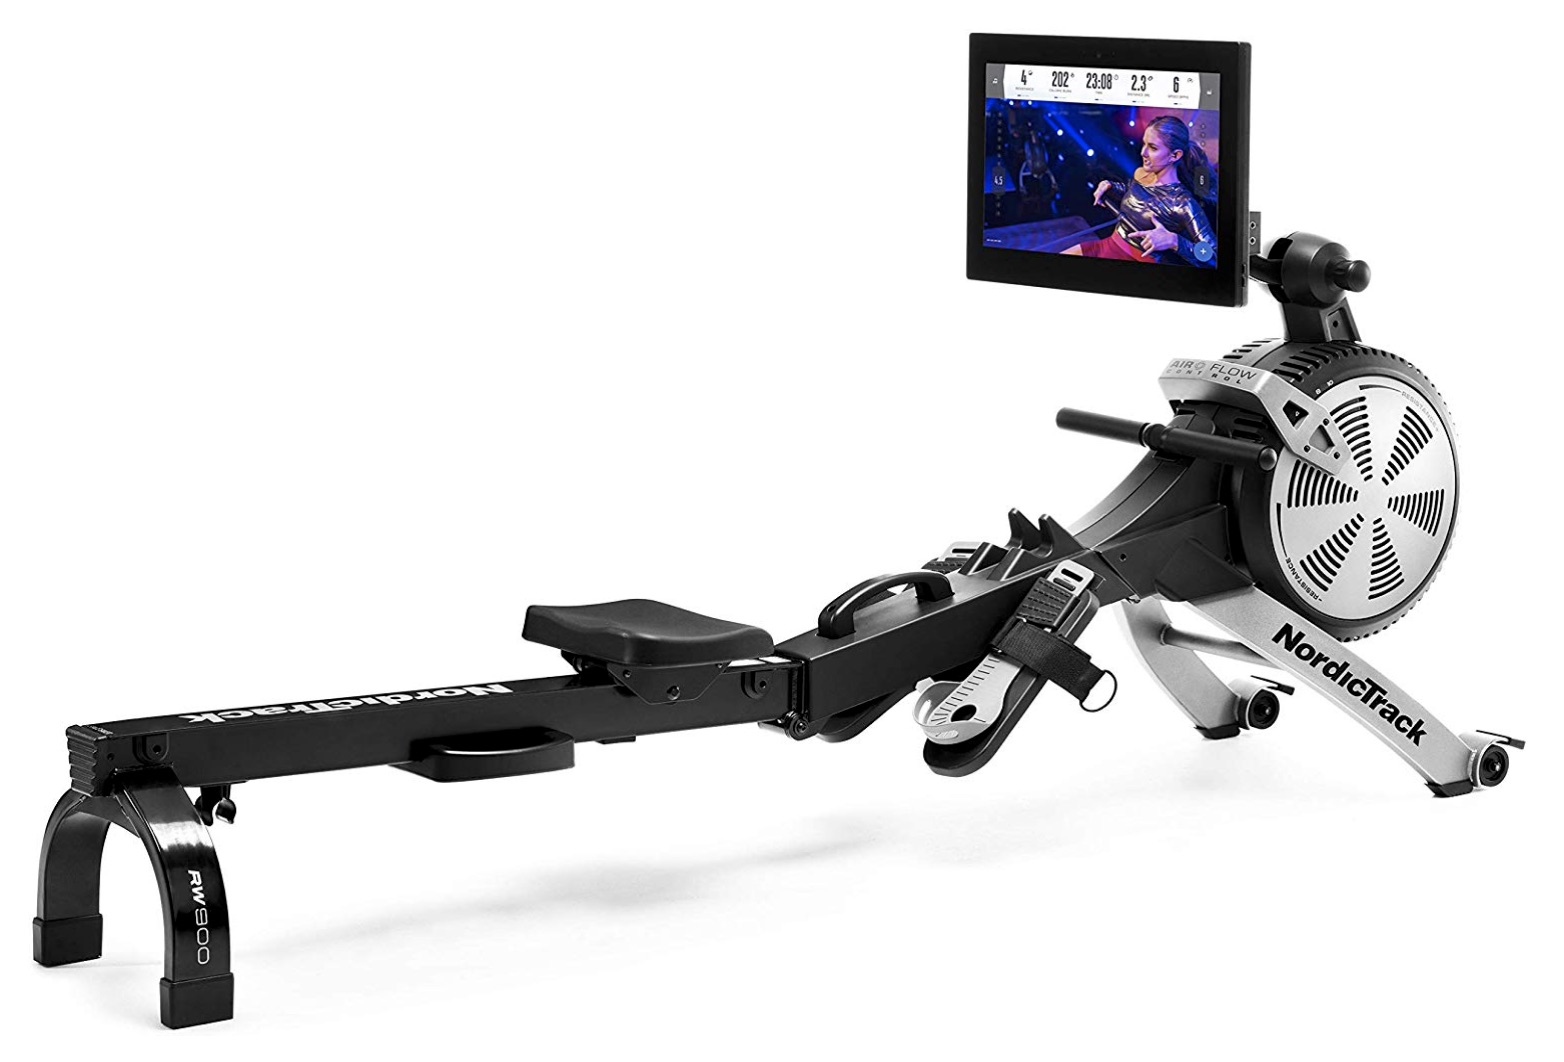 NordicTrack RW900 Rower Review